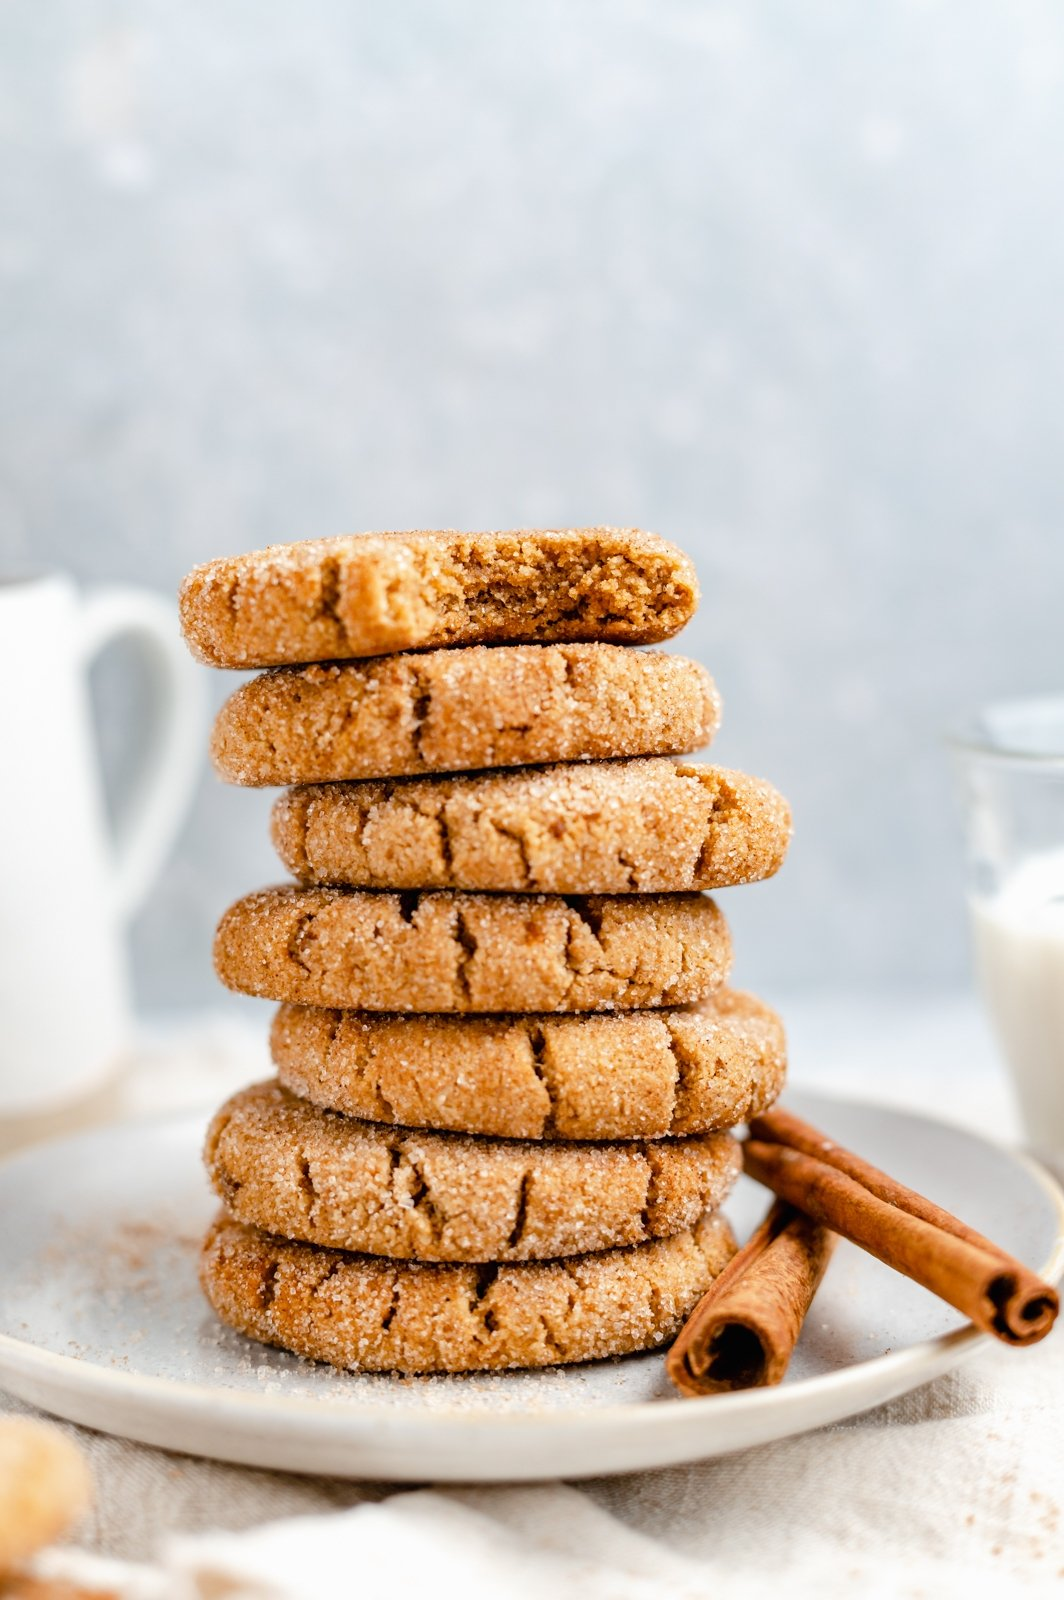 paleo snickerdoodles in a stack on a plate